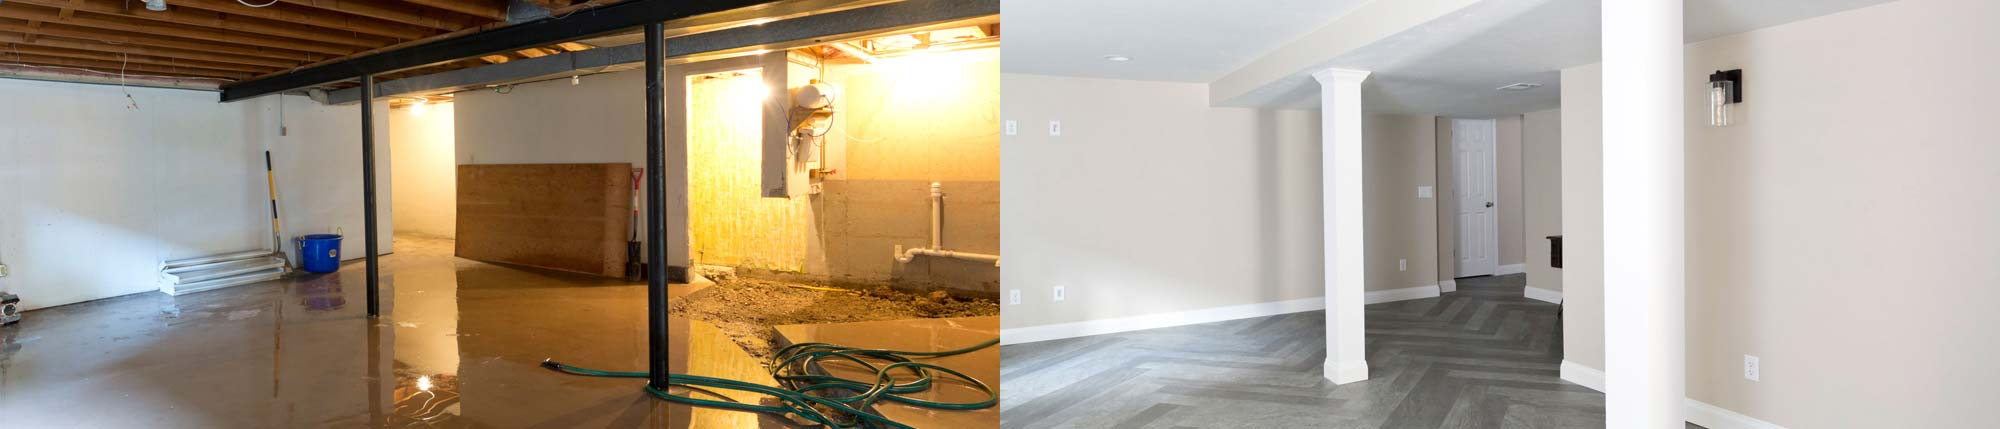 Finished Basement Contractor and Remodeling in Green Bay and Appleton